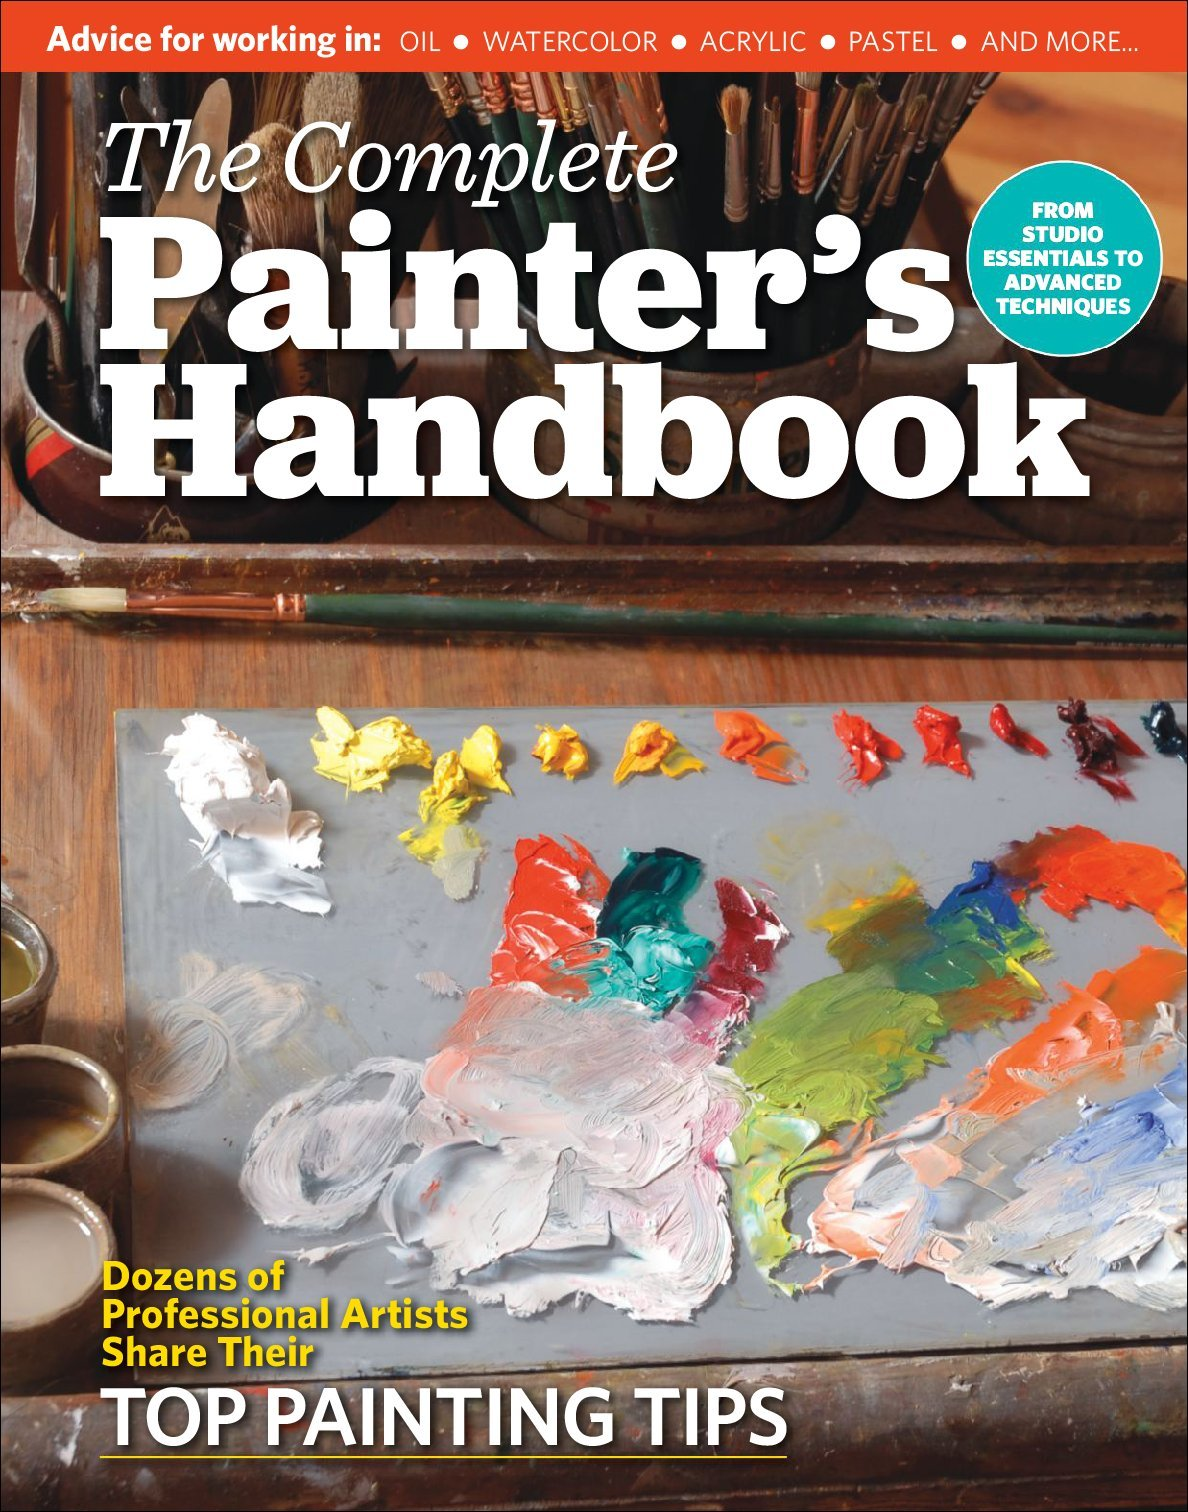 The Complete Painter's Handbook From Studio Essentials to Advanced Techniques Digital